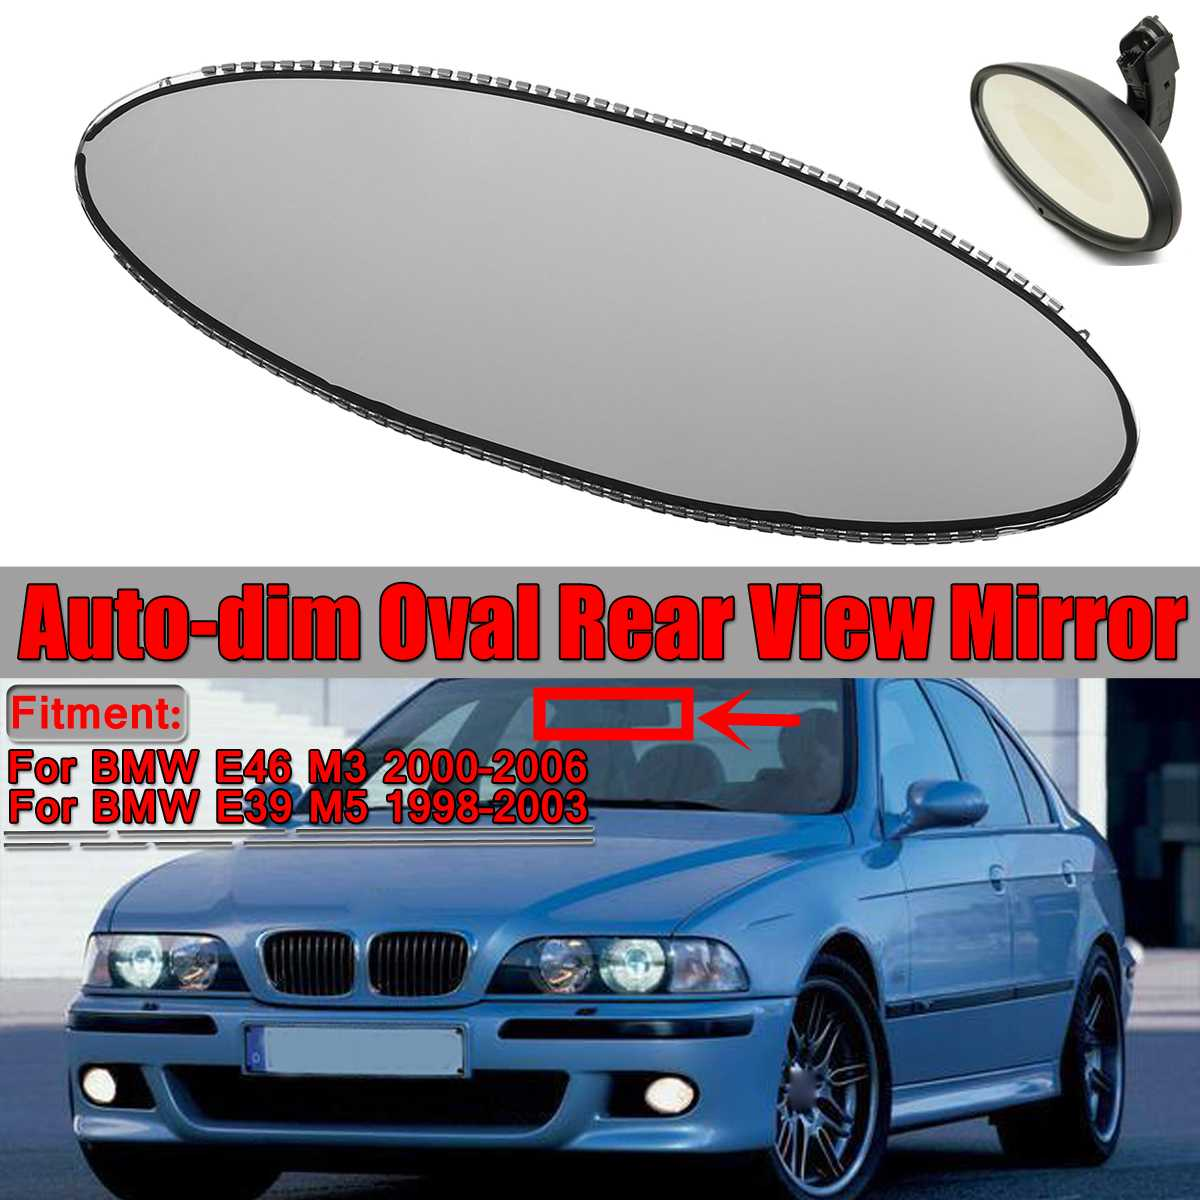 BMW E46 M3 /& E39 M5 Oval Rear View Mirror Auto-Dimming Glass Cell REPAIR SERVICE